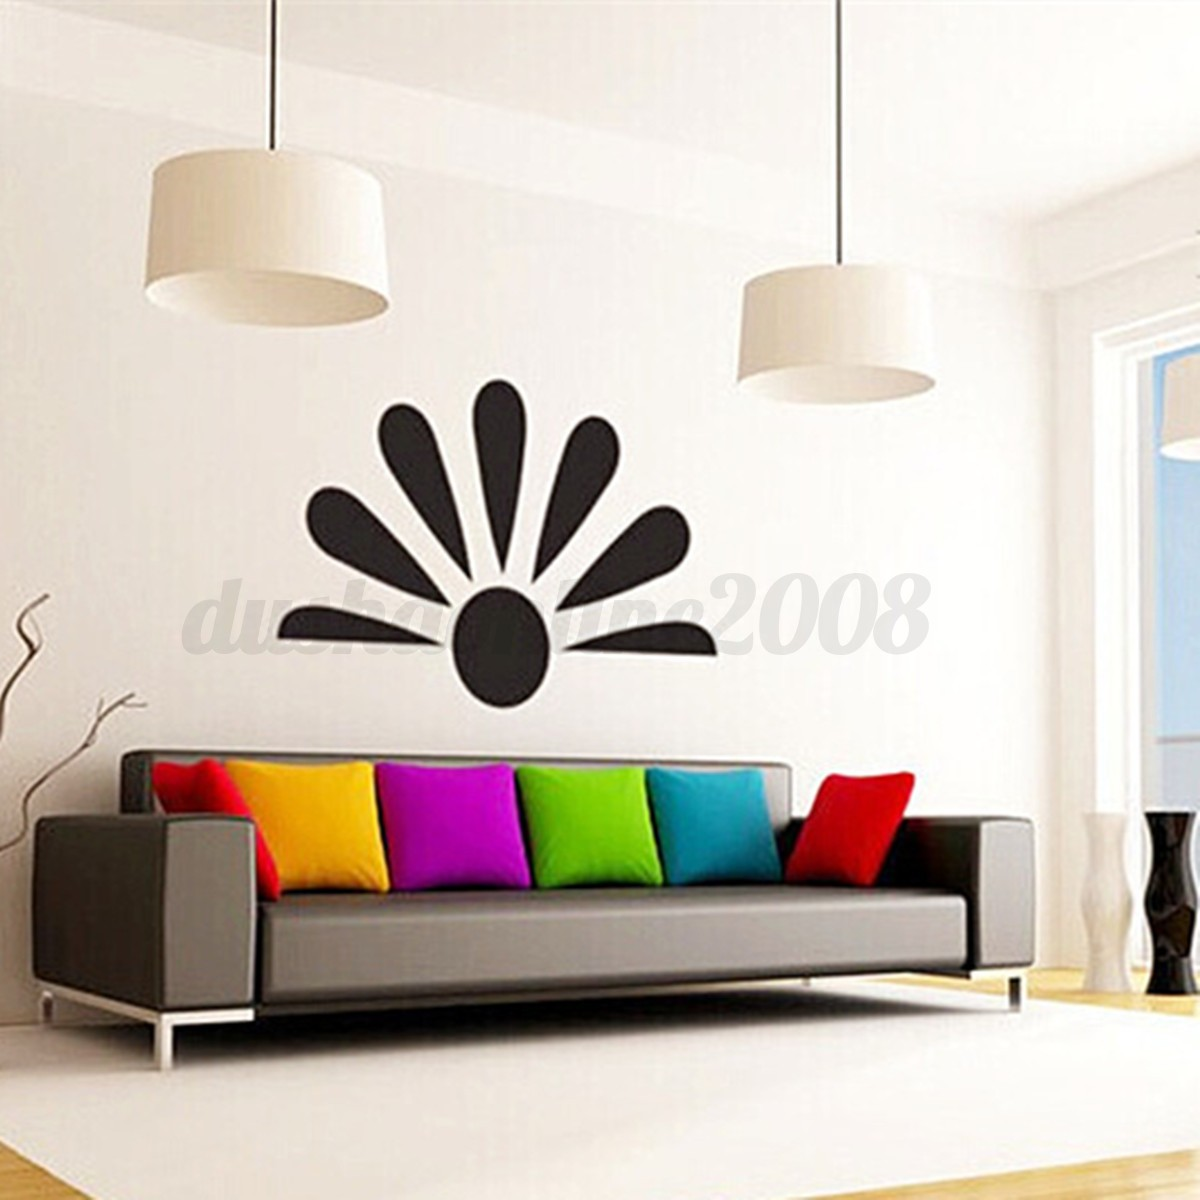 8pcs epanouissement diy autocollant mural miroir adh sif for Decor mural adhesif